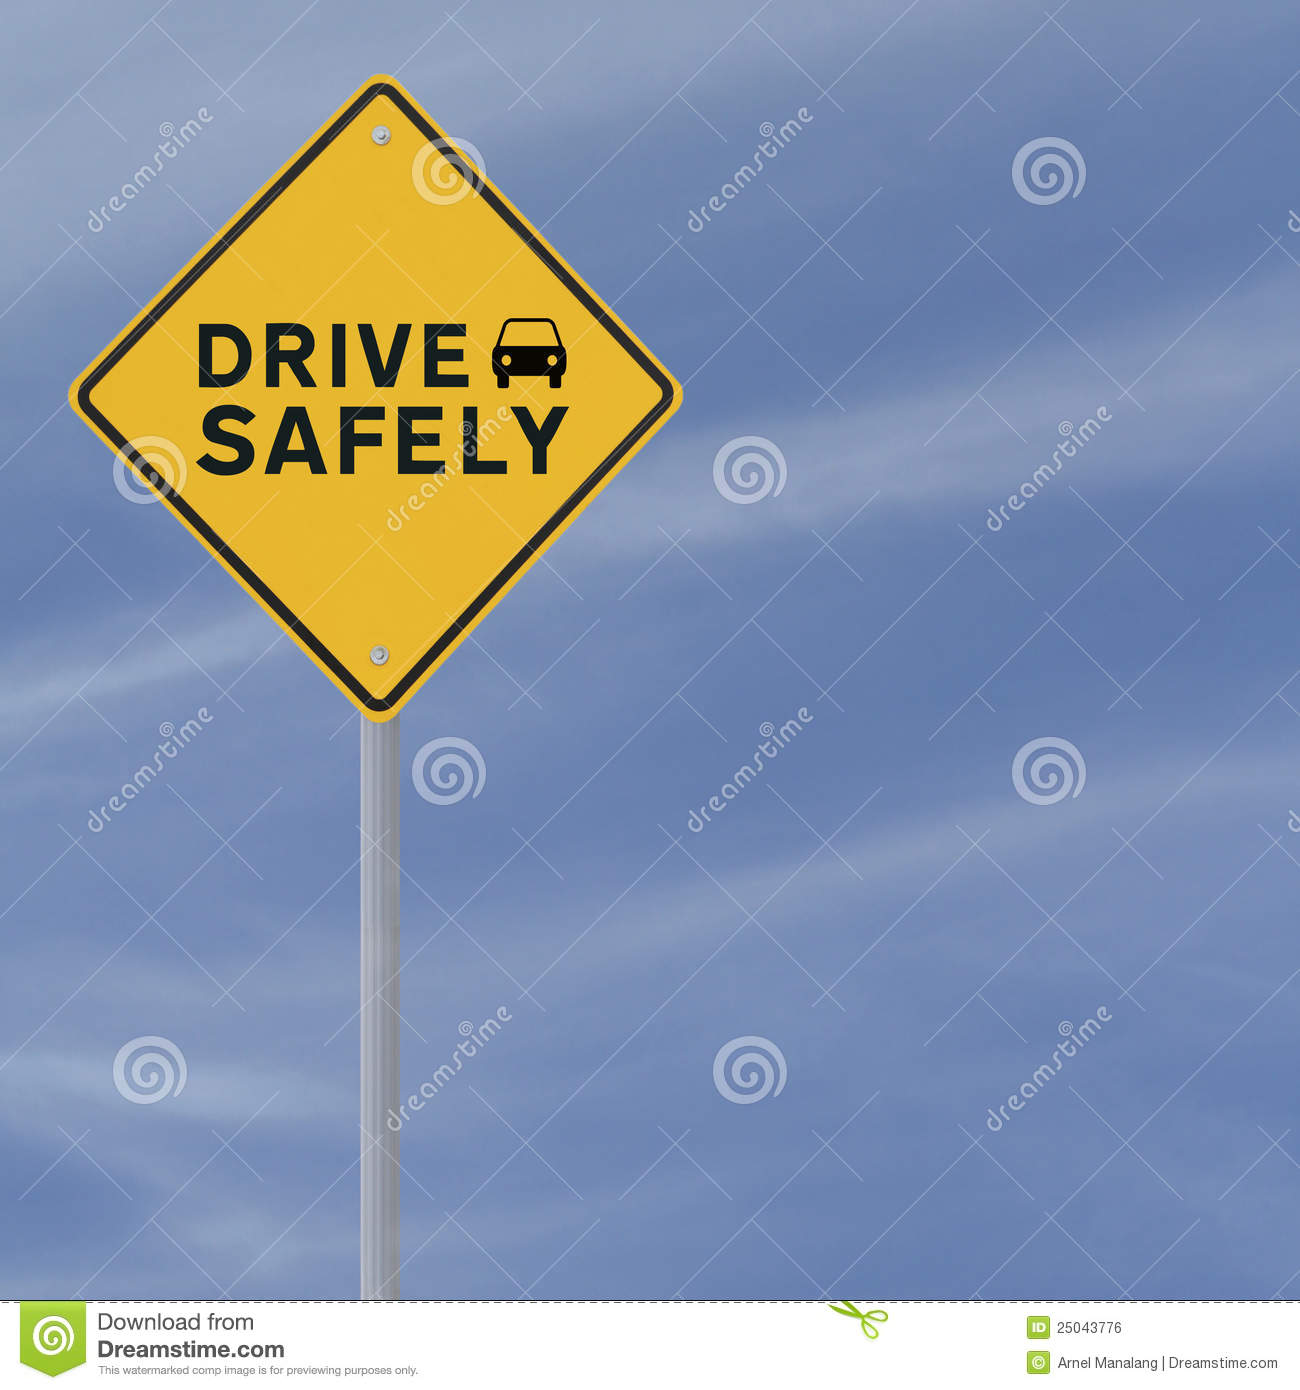 to video safeley download how driver